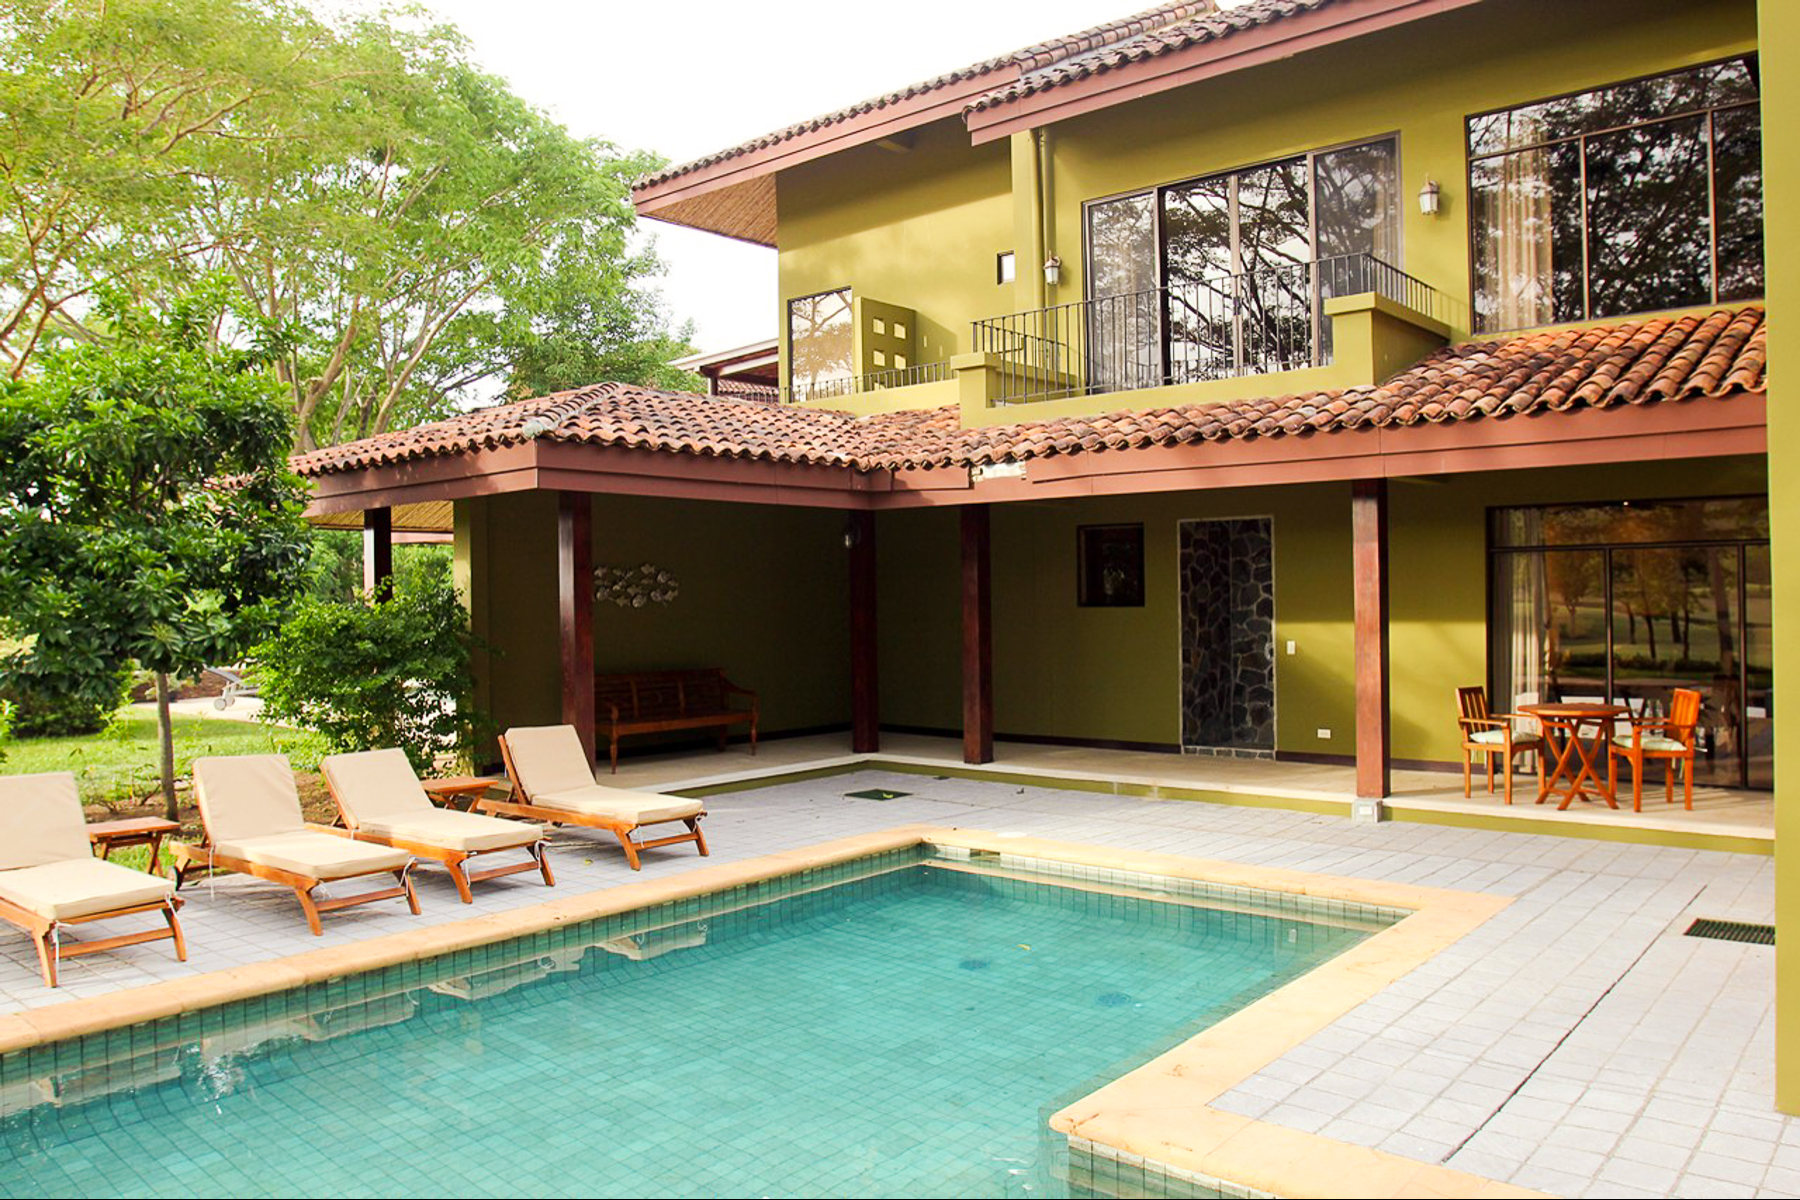 Other Residential for Sale at Villa Carao 6 PRICE REDUCED Reserva Conchal, 50308 Costa Rica